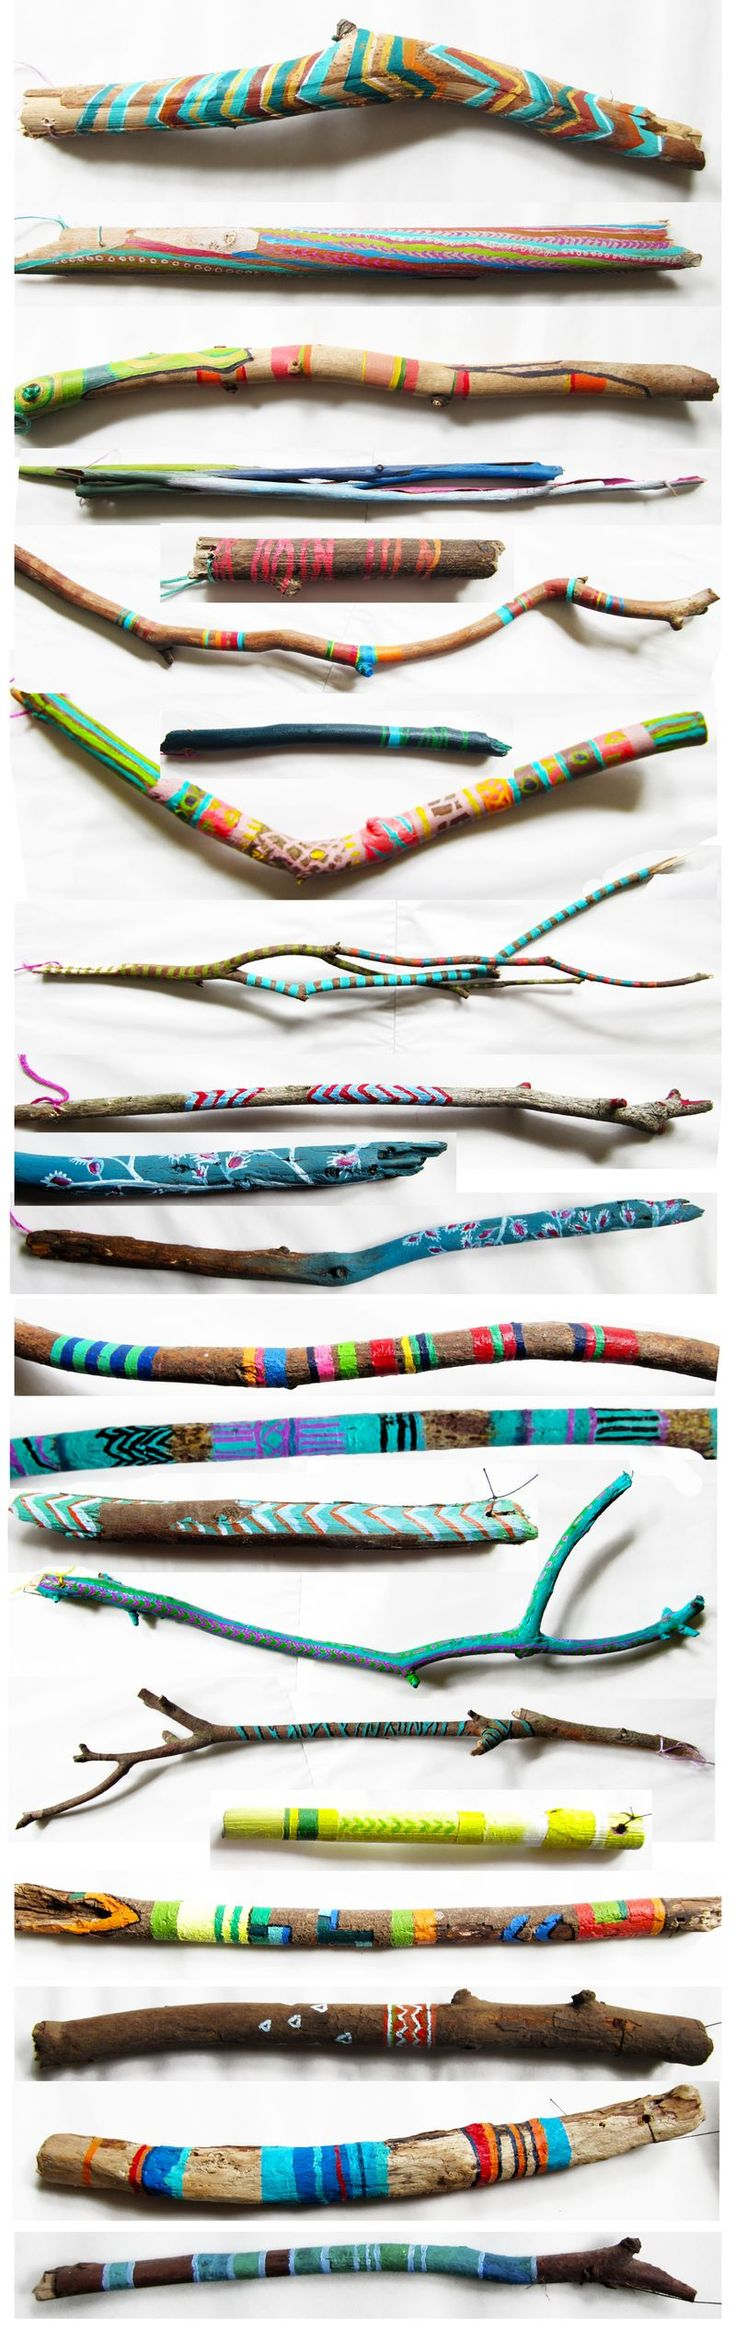 Painted sticks. This may be craft #2 at storytime this Monday.